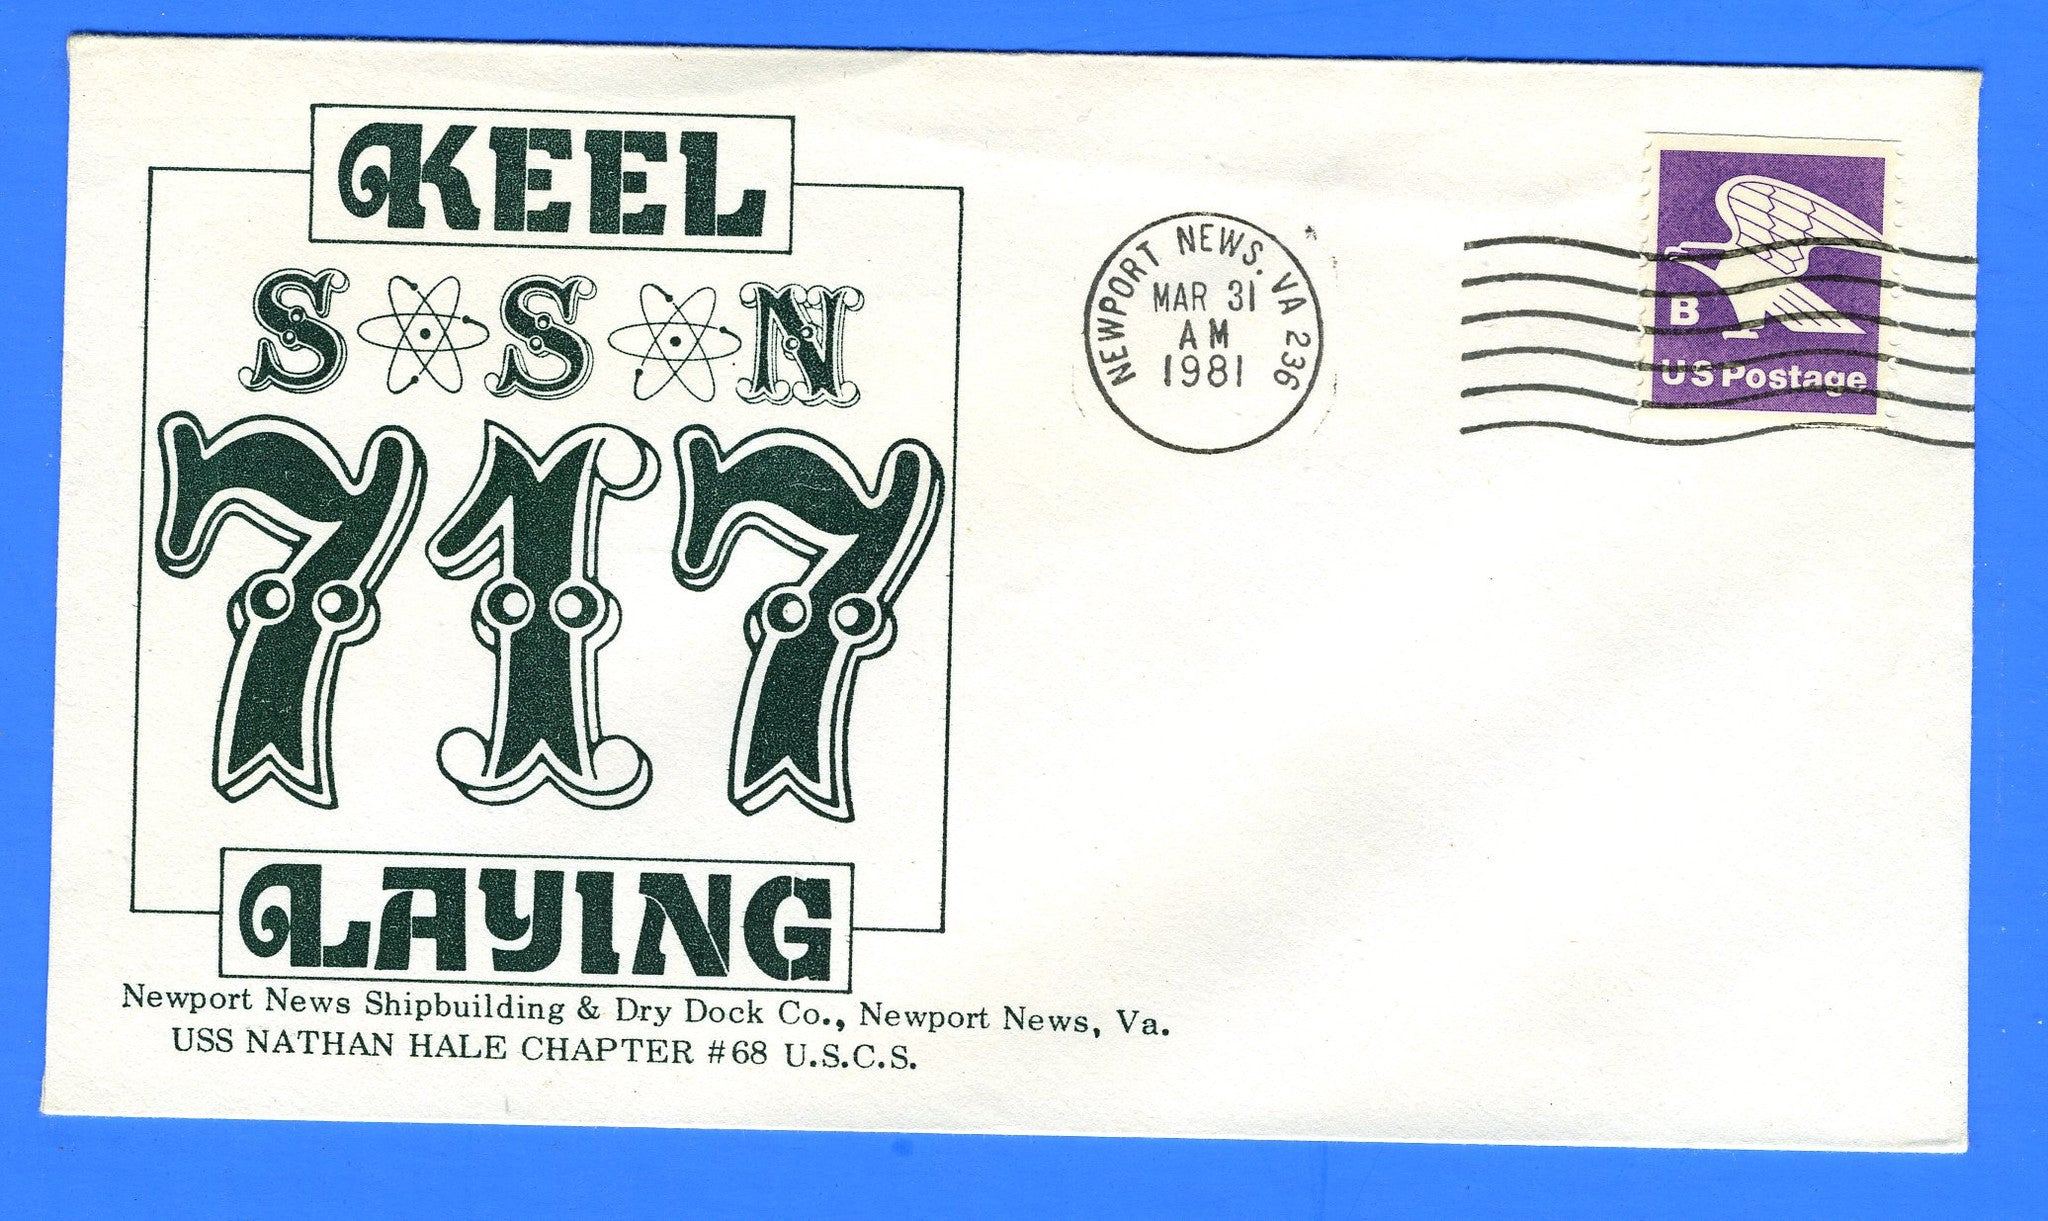 USS Olympia SSN-717 Keel Laying March 31, 1981